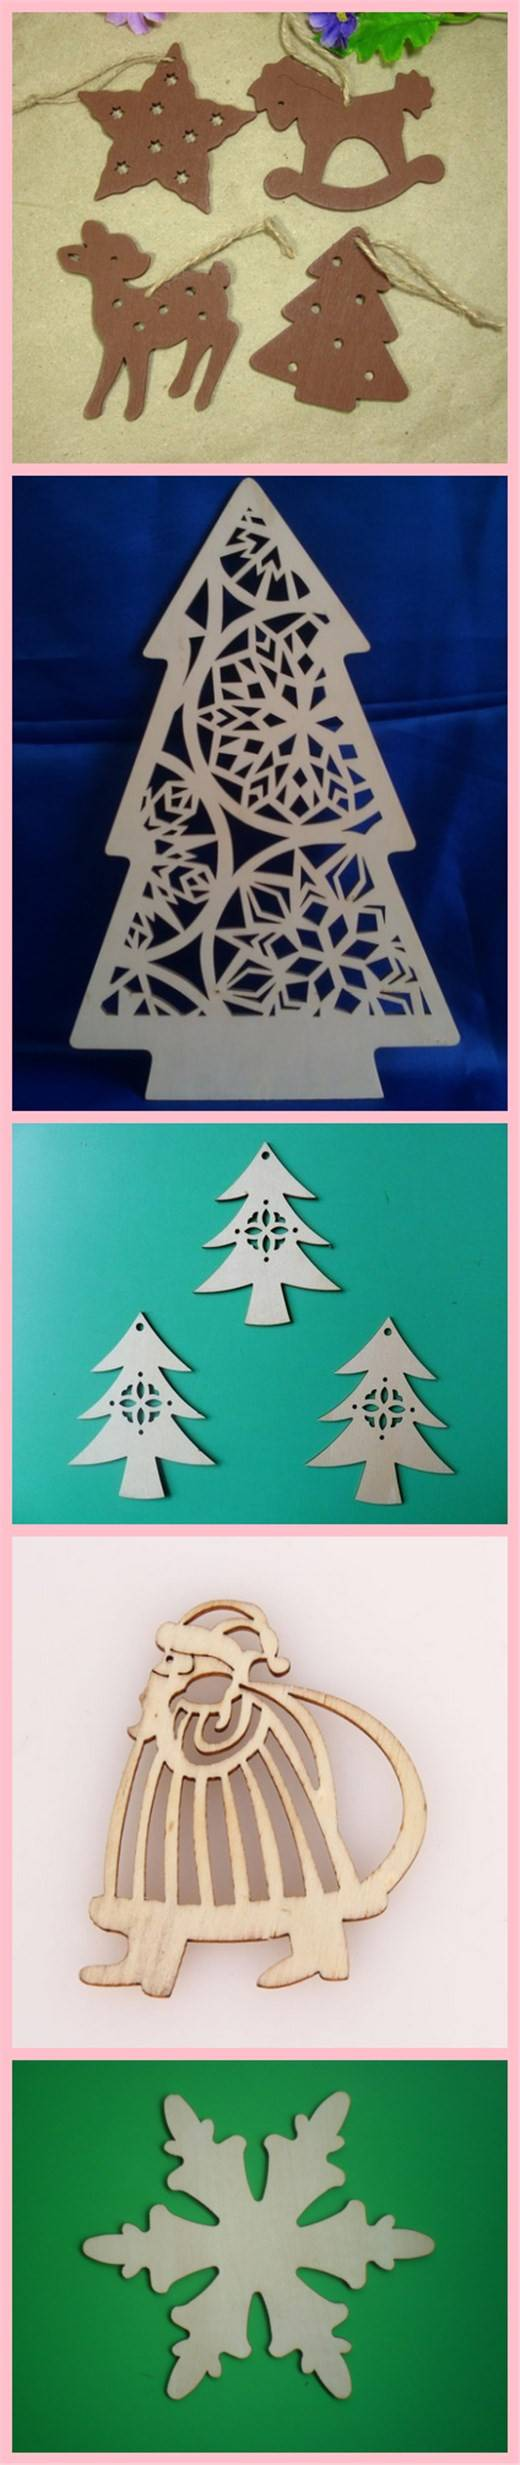 Christmas wood, acrylic decoration and wall hangings on sale